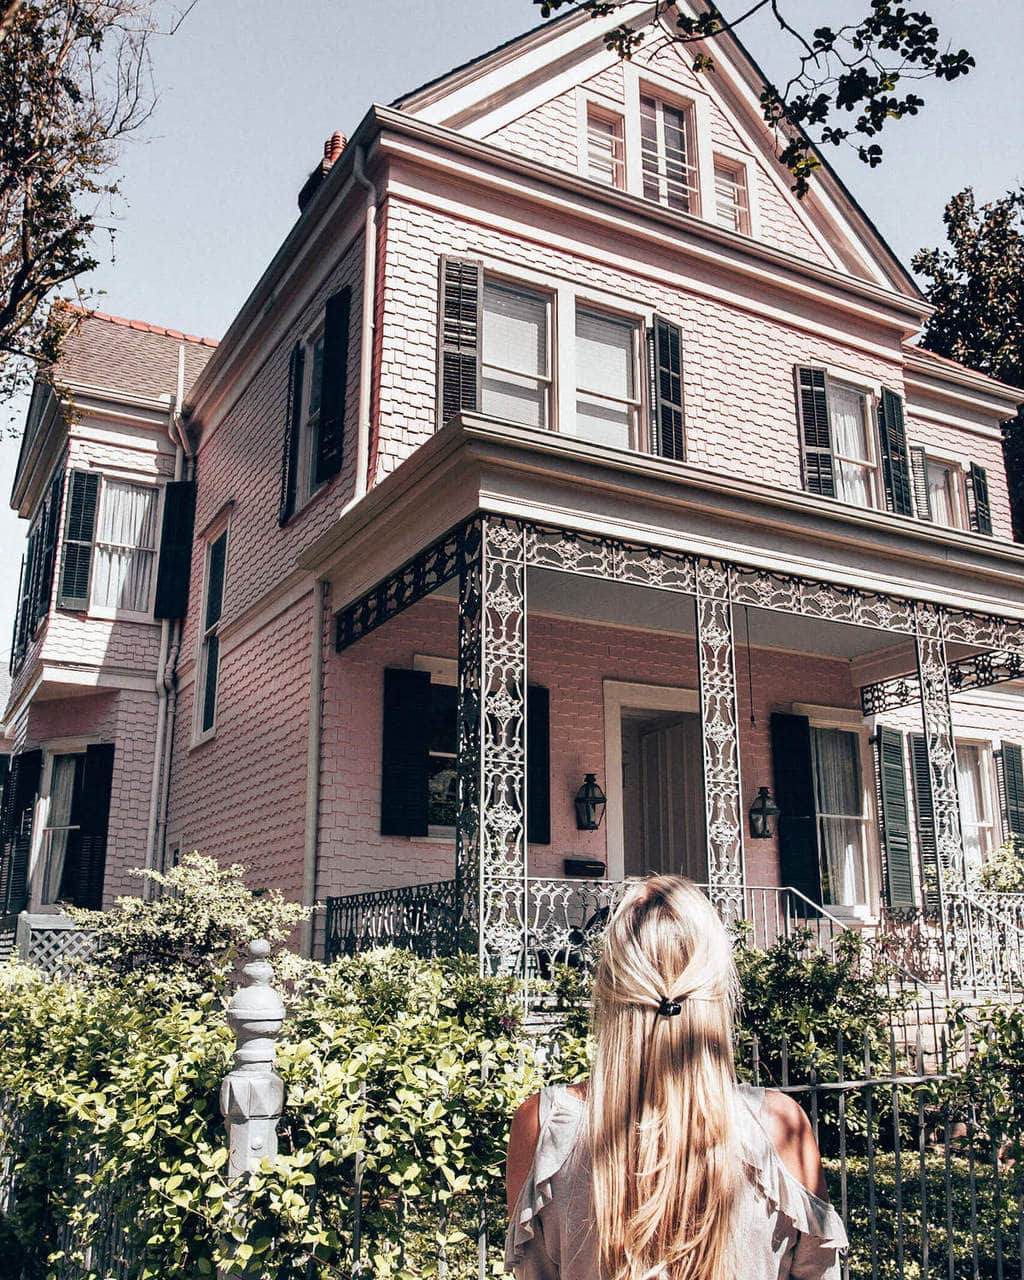 Woman looking at a pink house in the Garden District in New Orleans